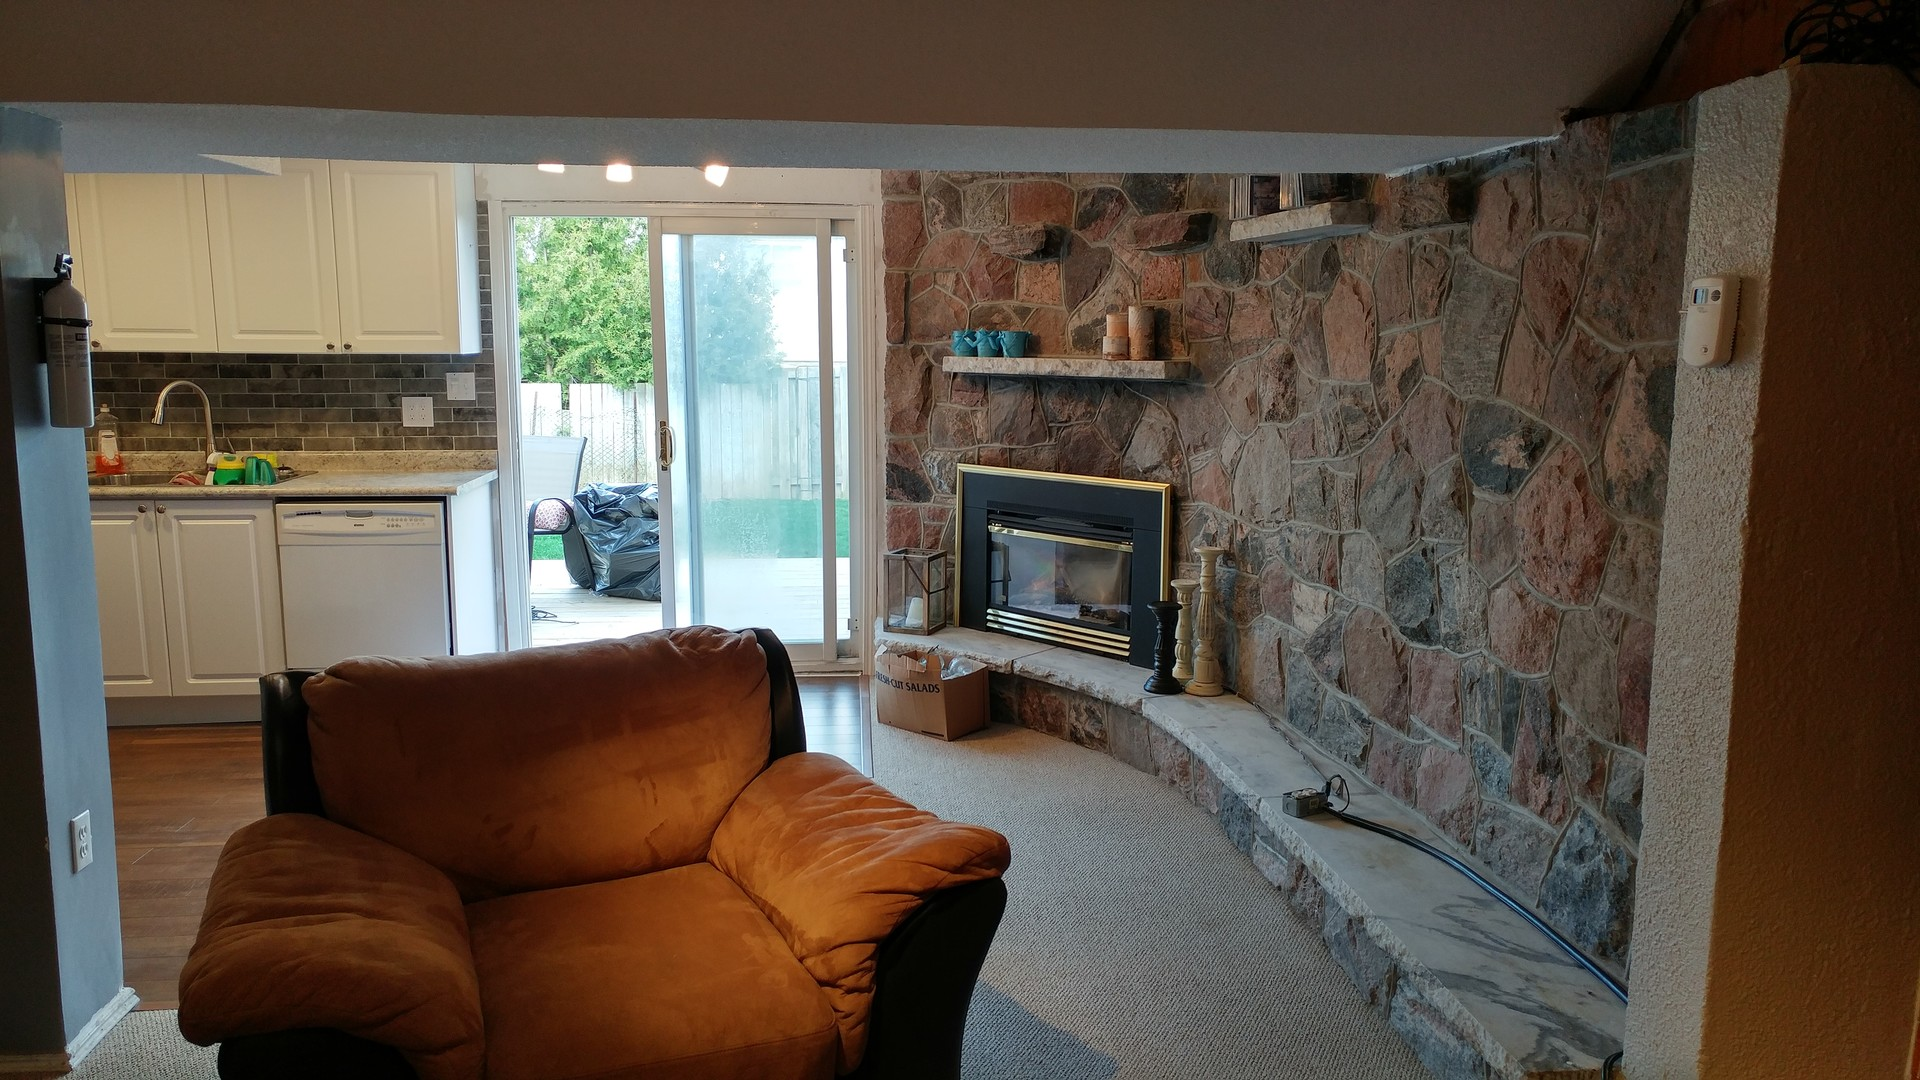 Backyard Apartment newly renovated above ground basement apartment with walkout to